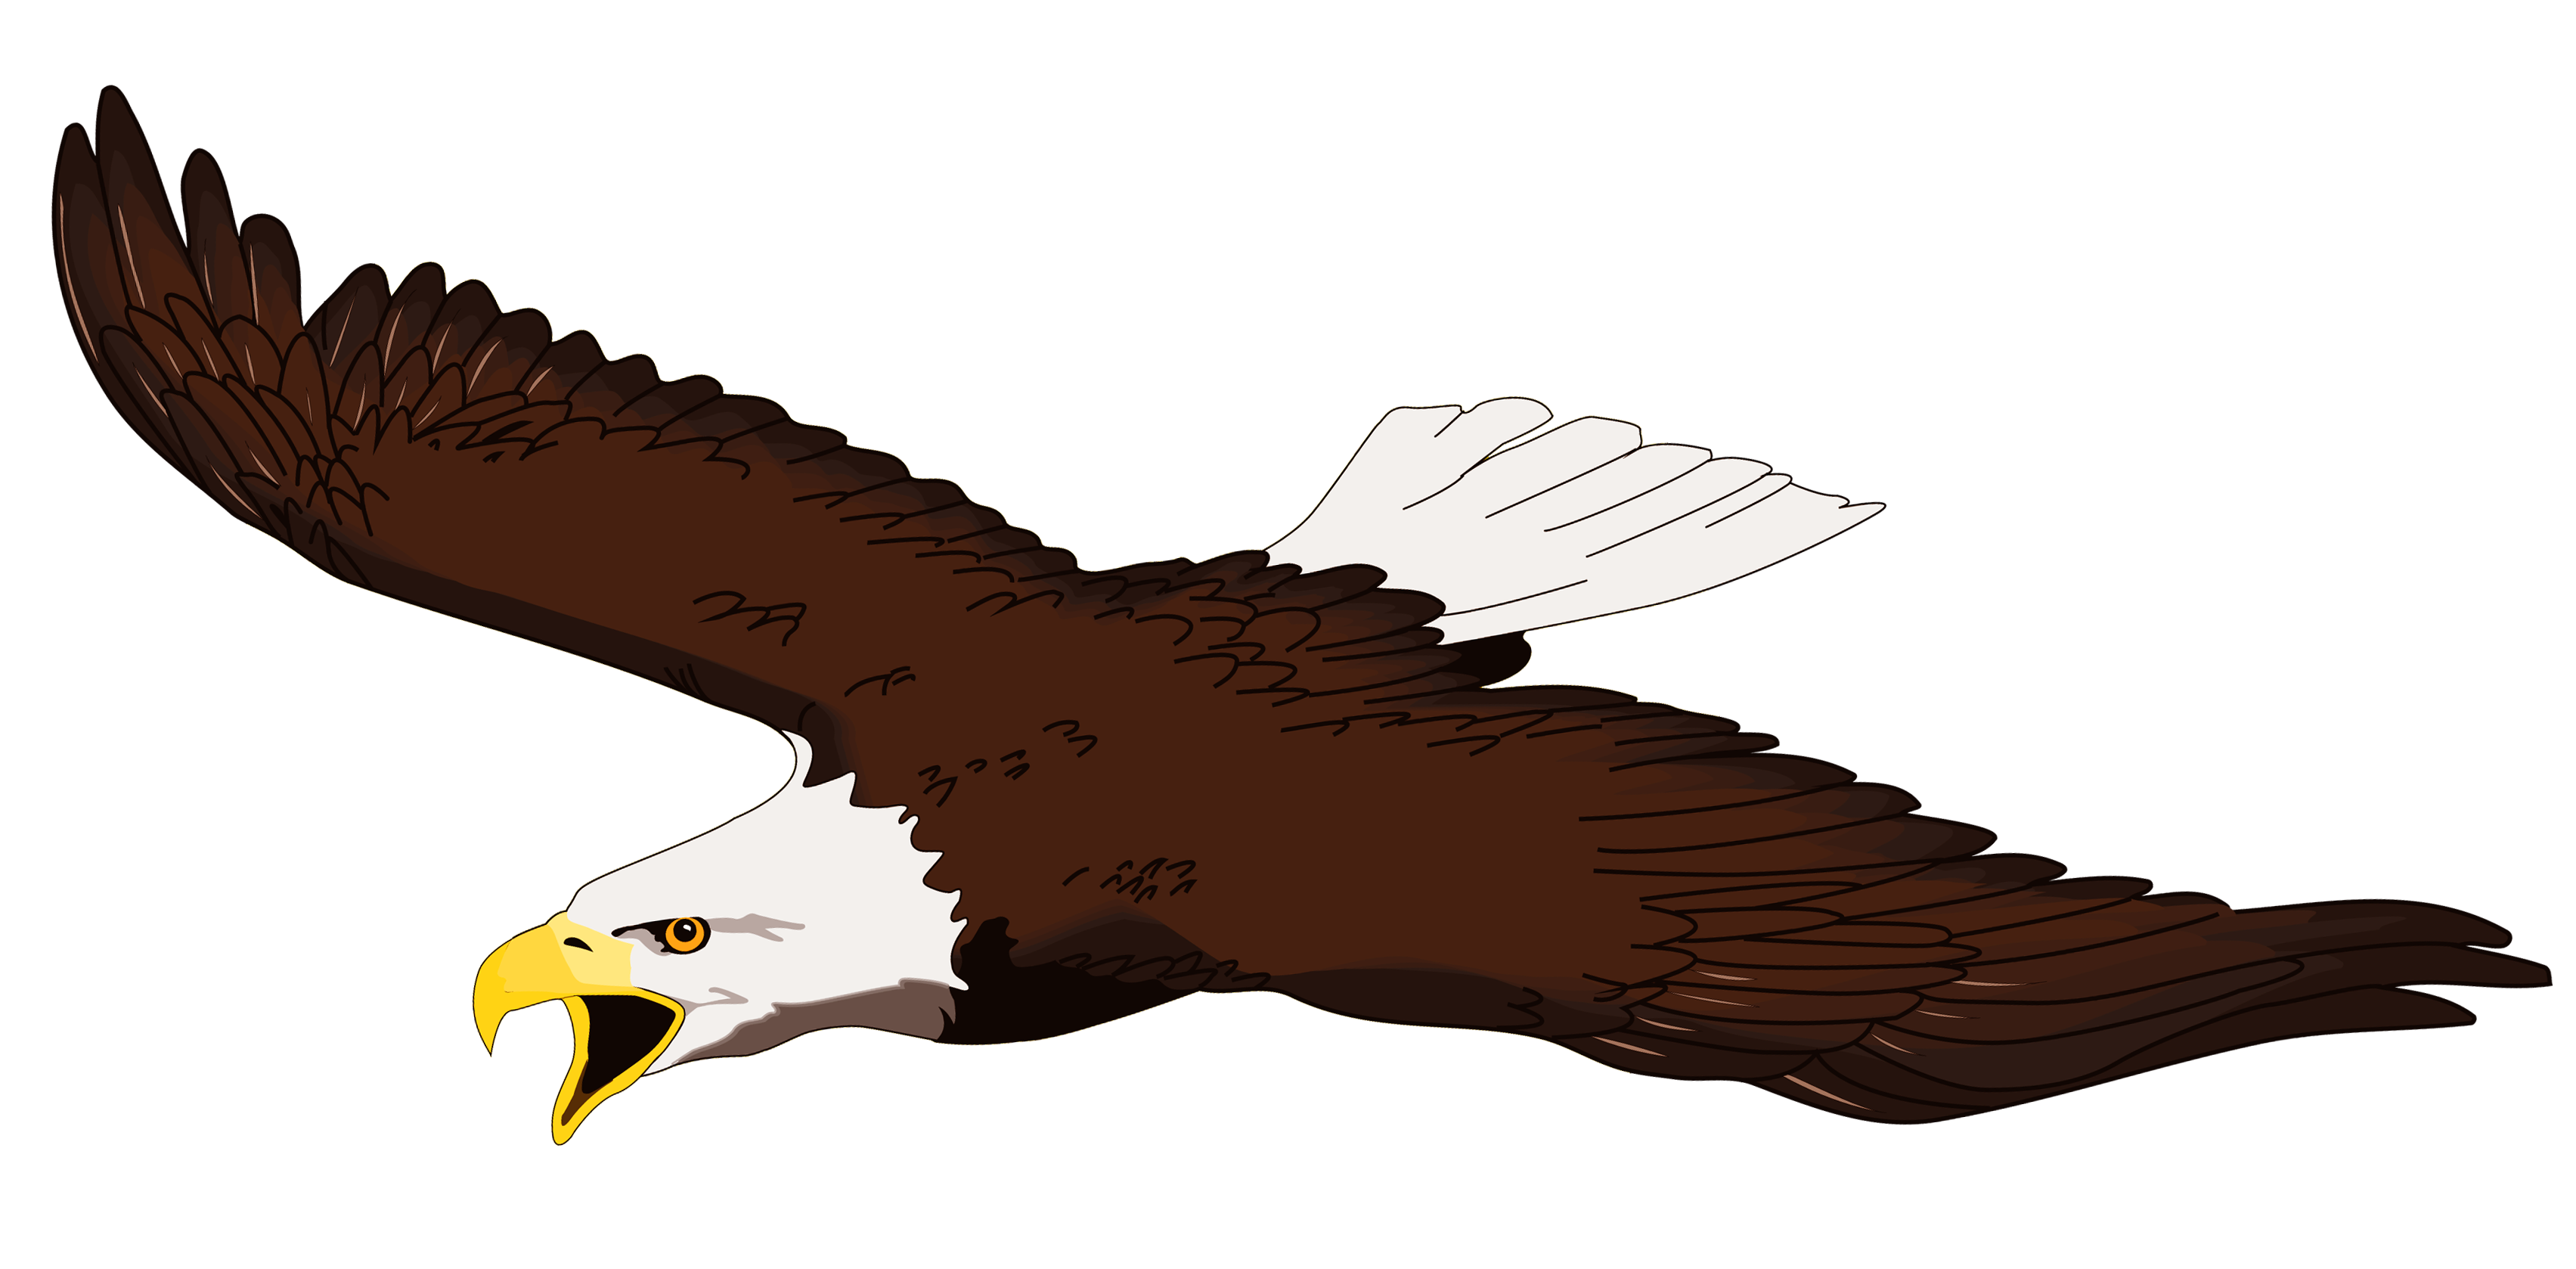 eagle bird clip art - photo #1